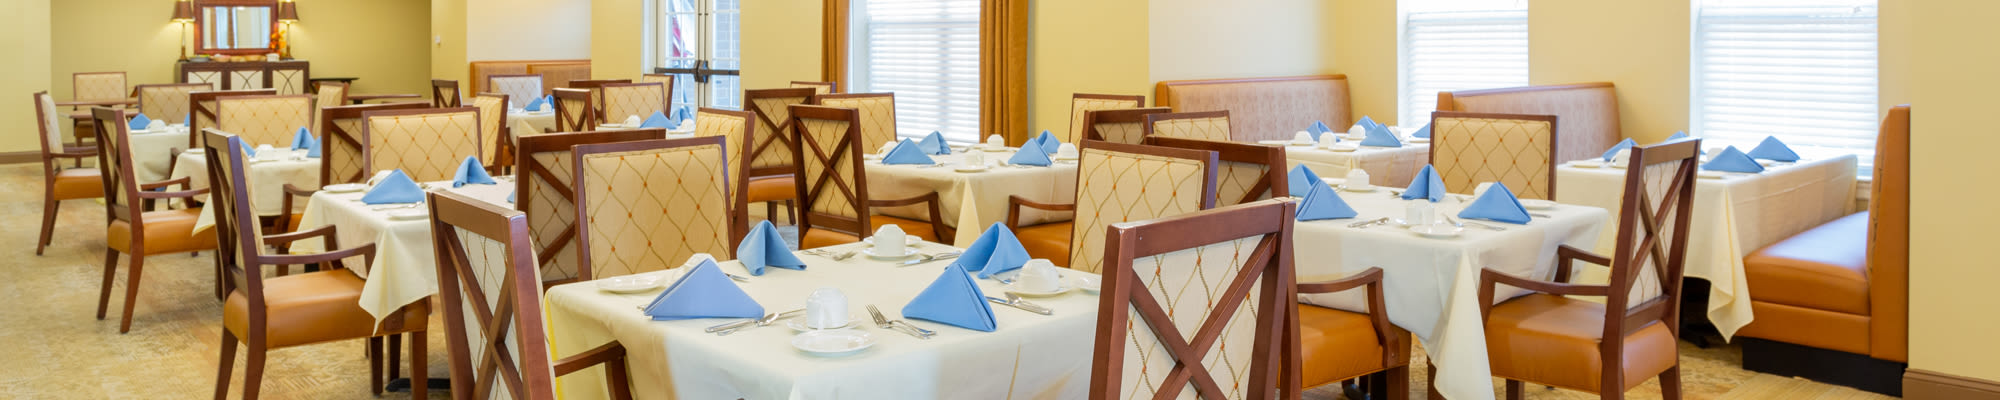 Dining at Harmony at West Shore in Mechanicsburg, Pennsylvania